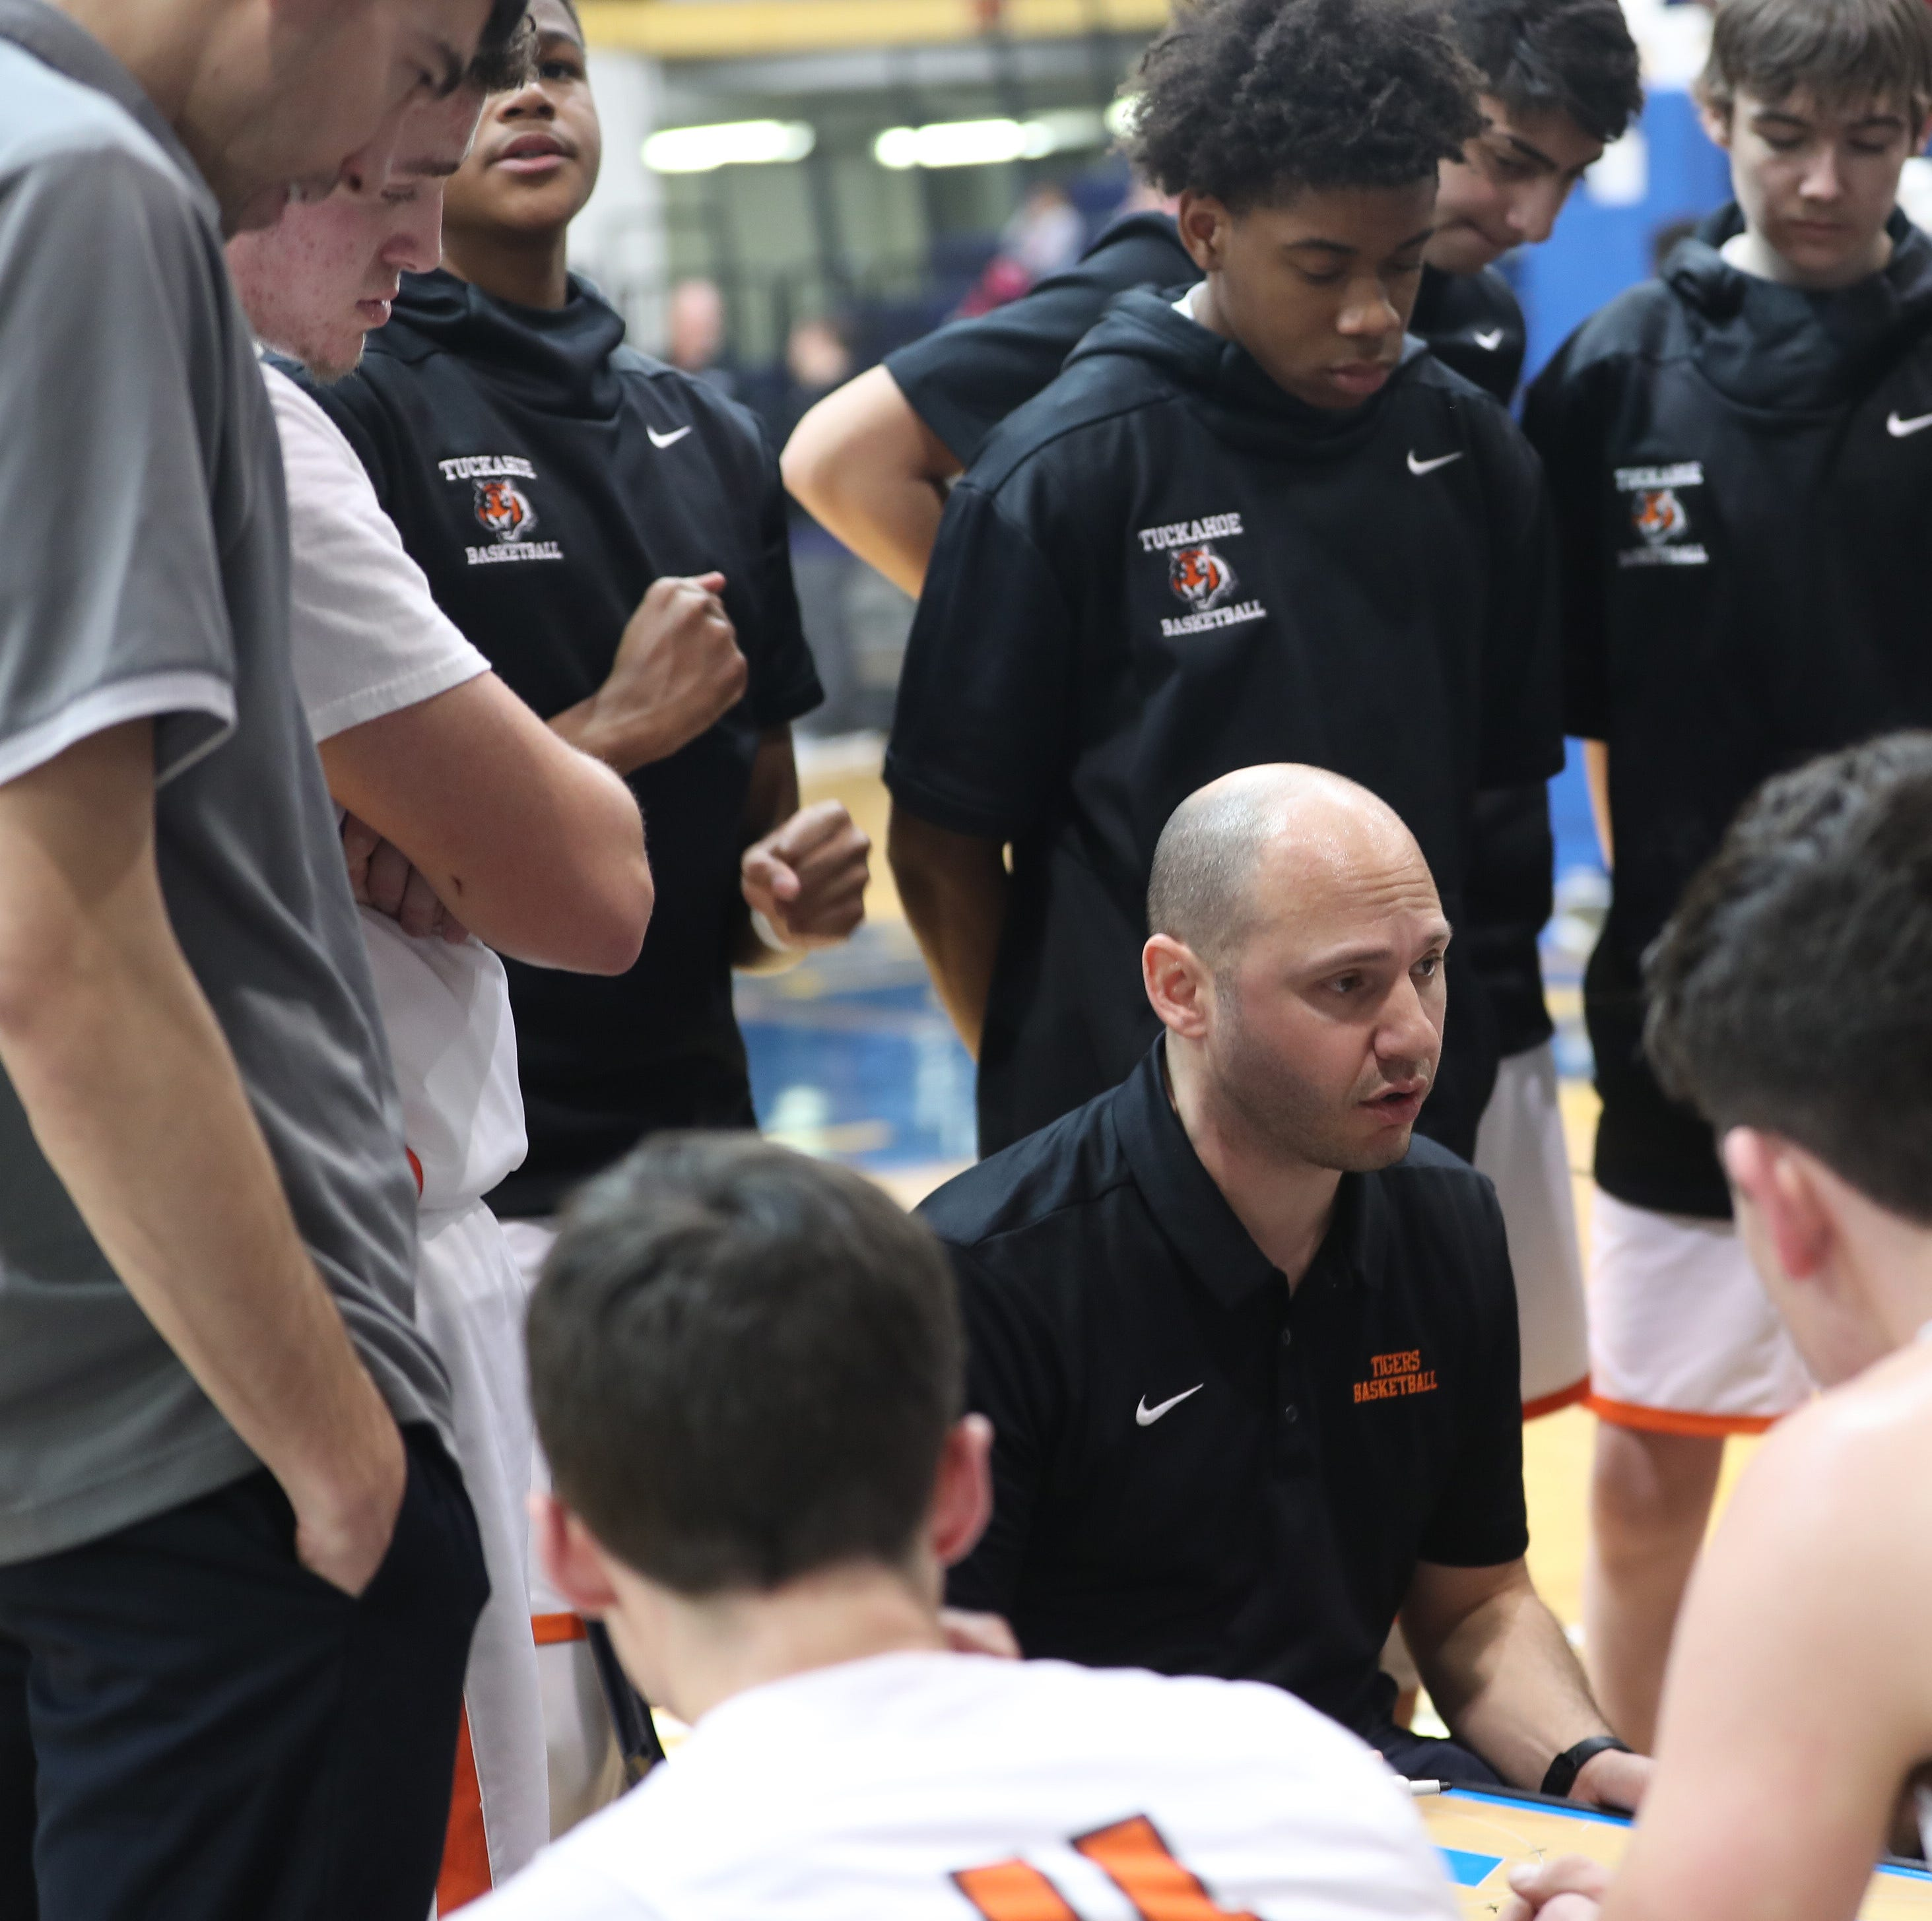 Boys basketball: Section 1 gaffe forces Tuckahoe to play Millbrook on short notice